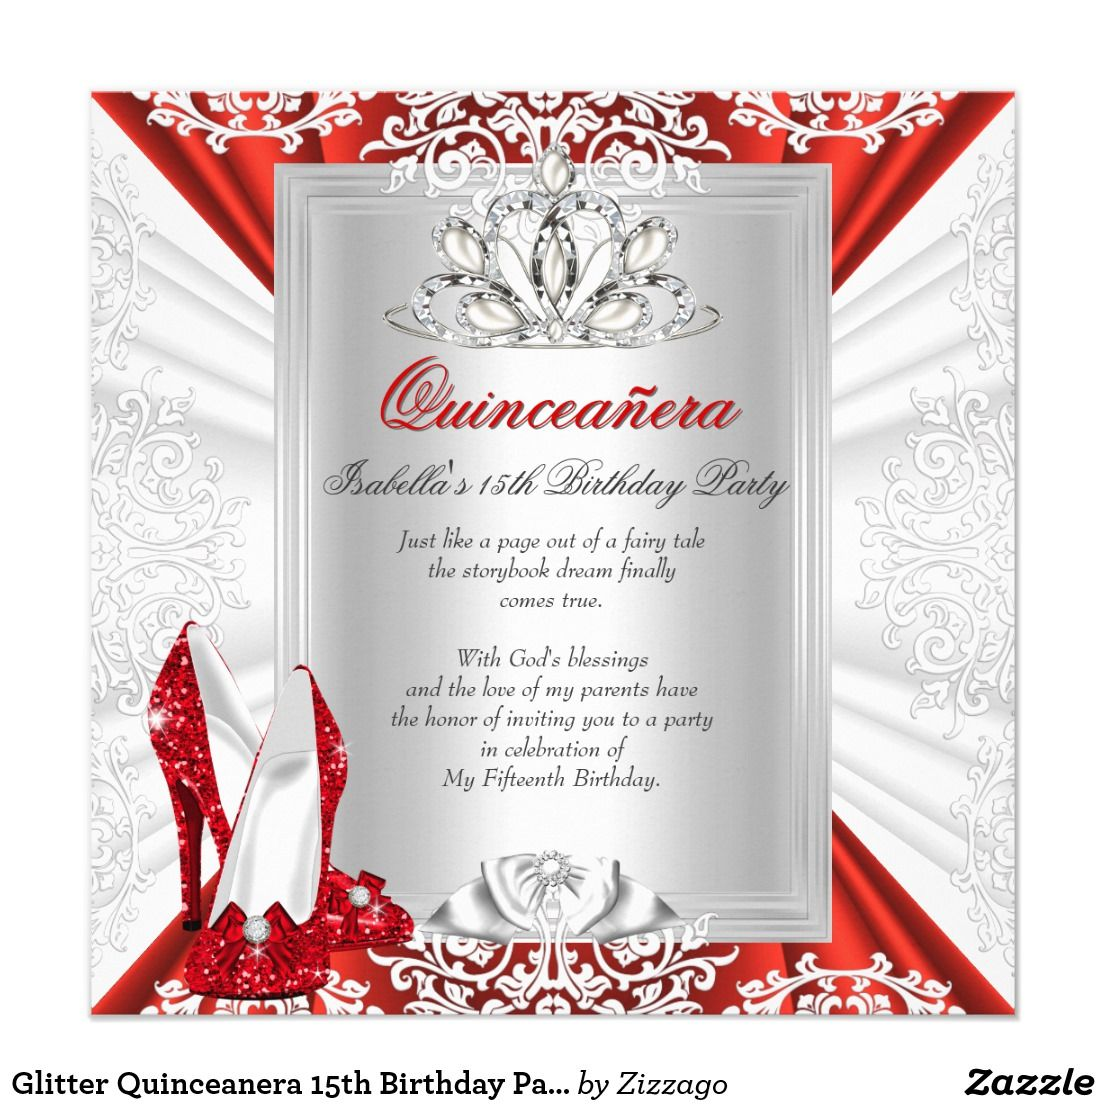 Glitter Quinceanera 15th Birthday Party Red Heels | Invitations ...